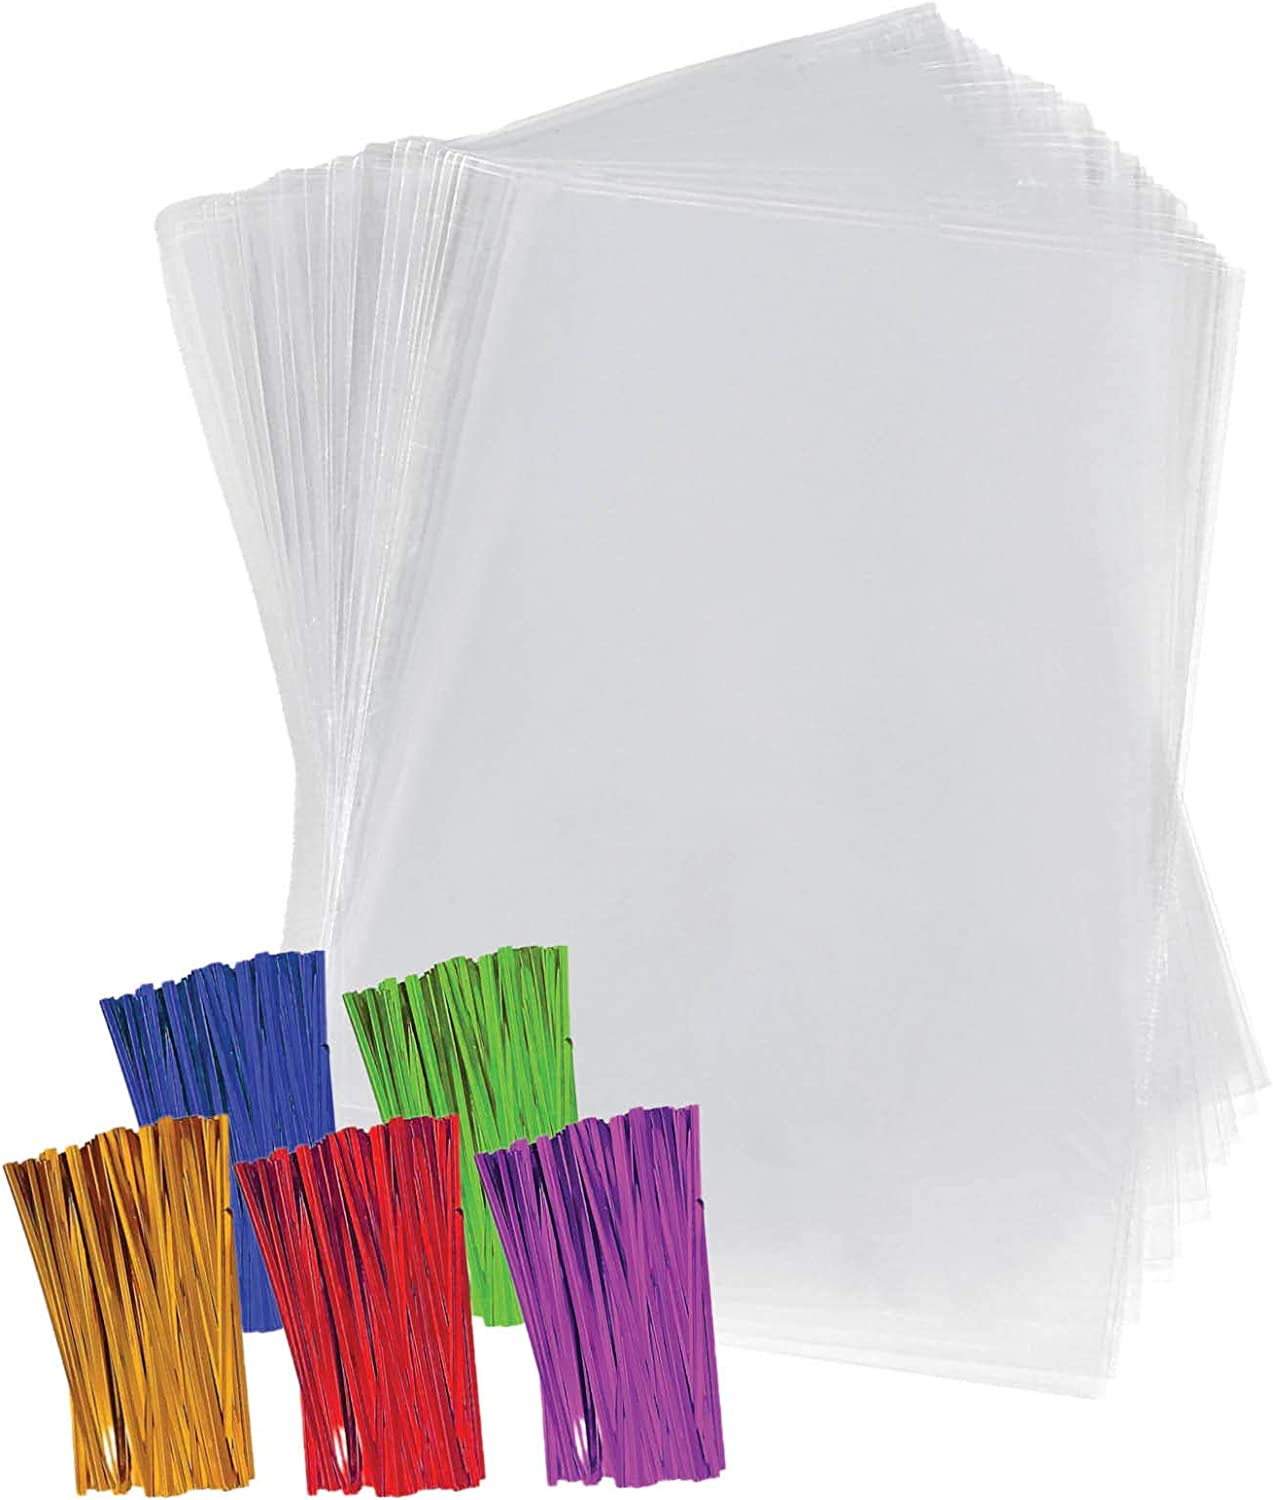 "Clear Plastic Cellophane Bags with 4"" Colored Twist Ties for Gifts Party Favors (6""x9"", 200 Pack)"